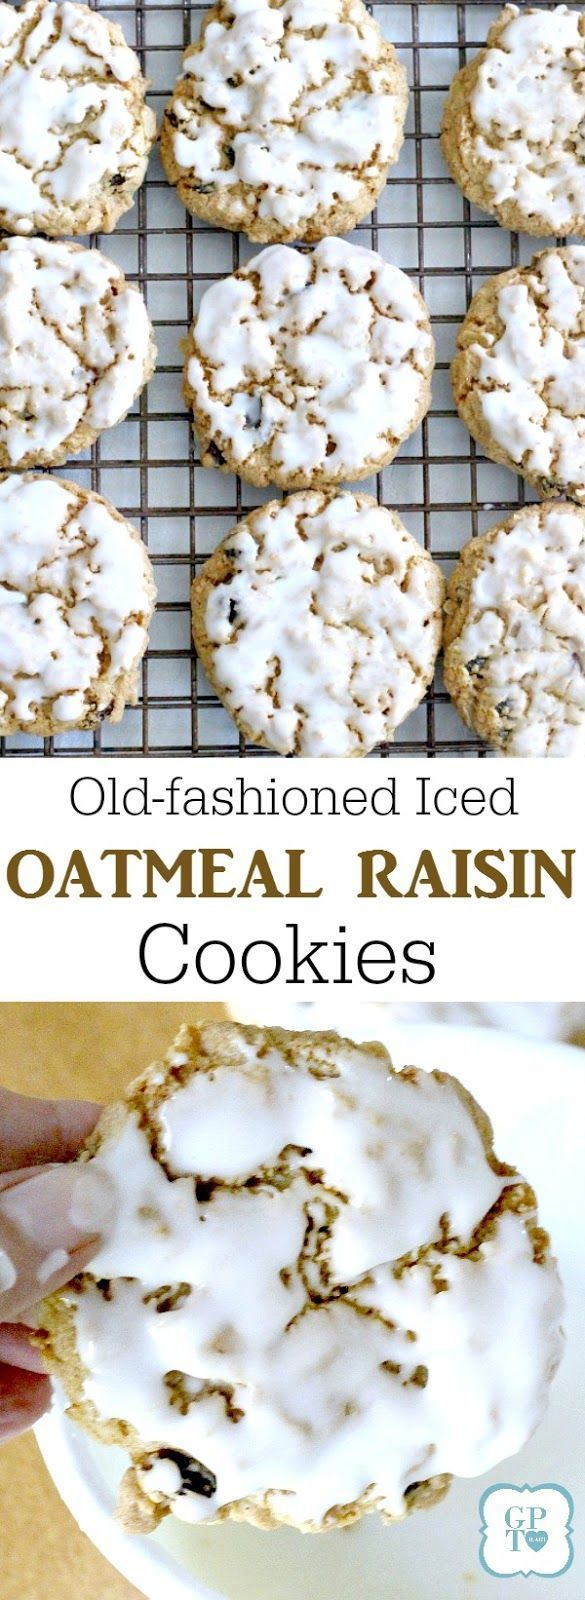 Chewy iced oatmeal raisin cookies. Easy recipe for old-fashioned frosted treats to bake for and with kids.